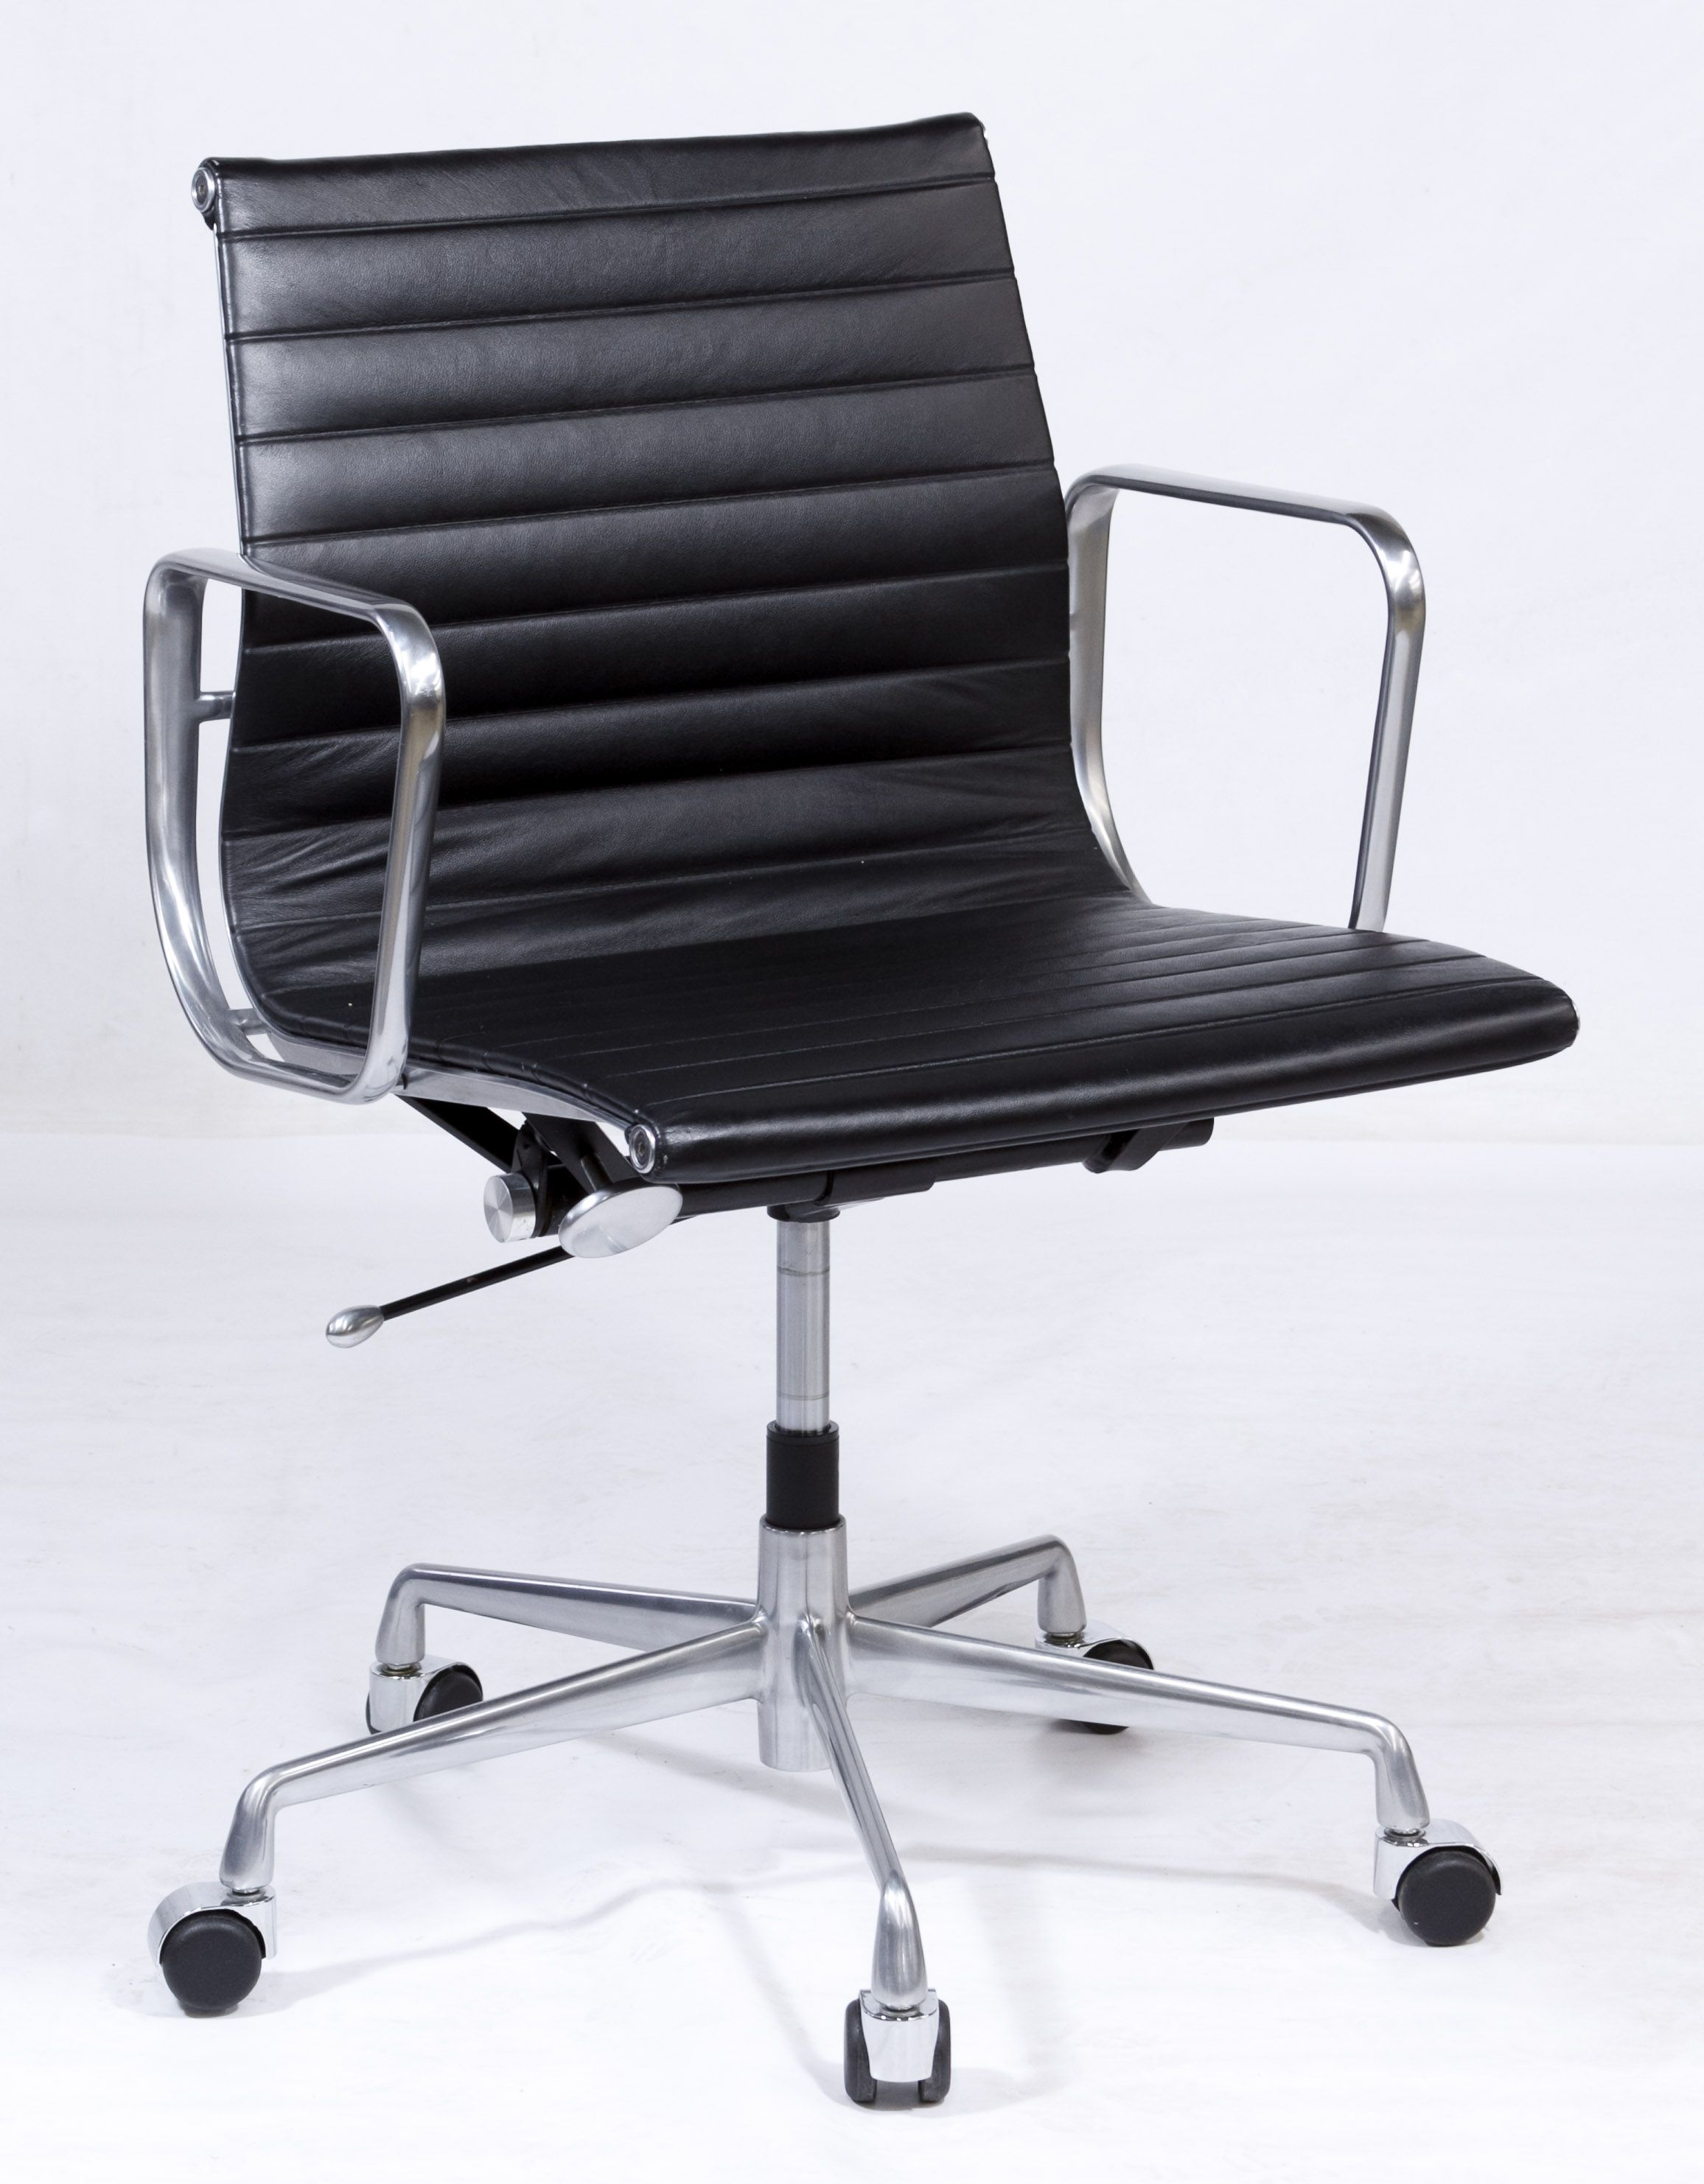 Lot 64 Mid Century Modern Office Chair By Eames For Herman Miller